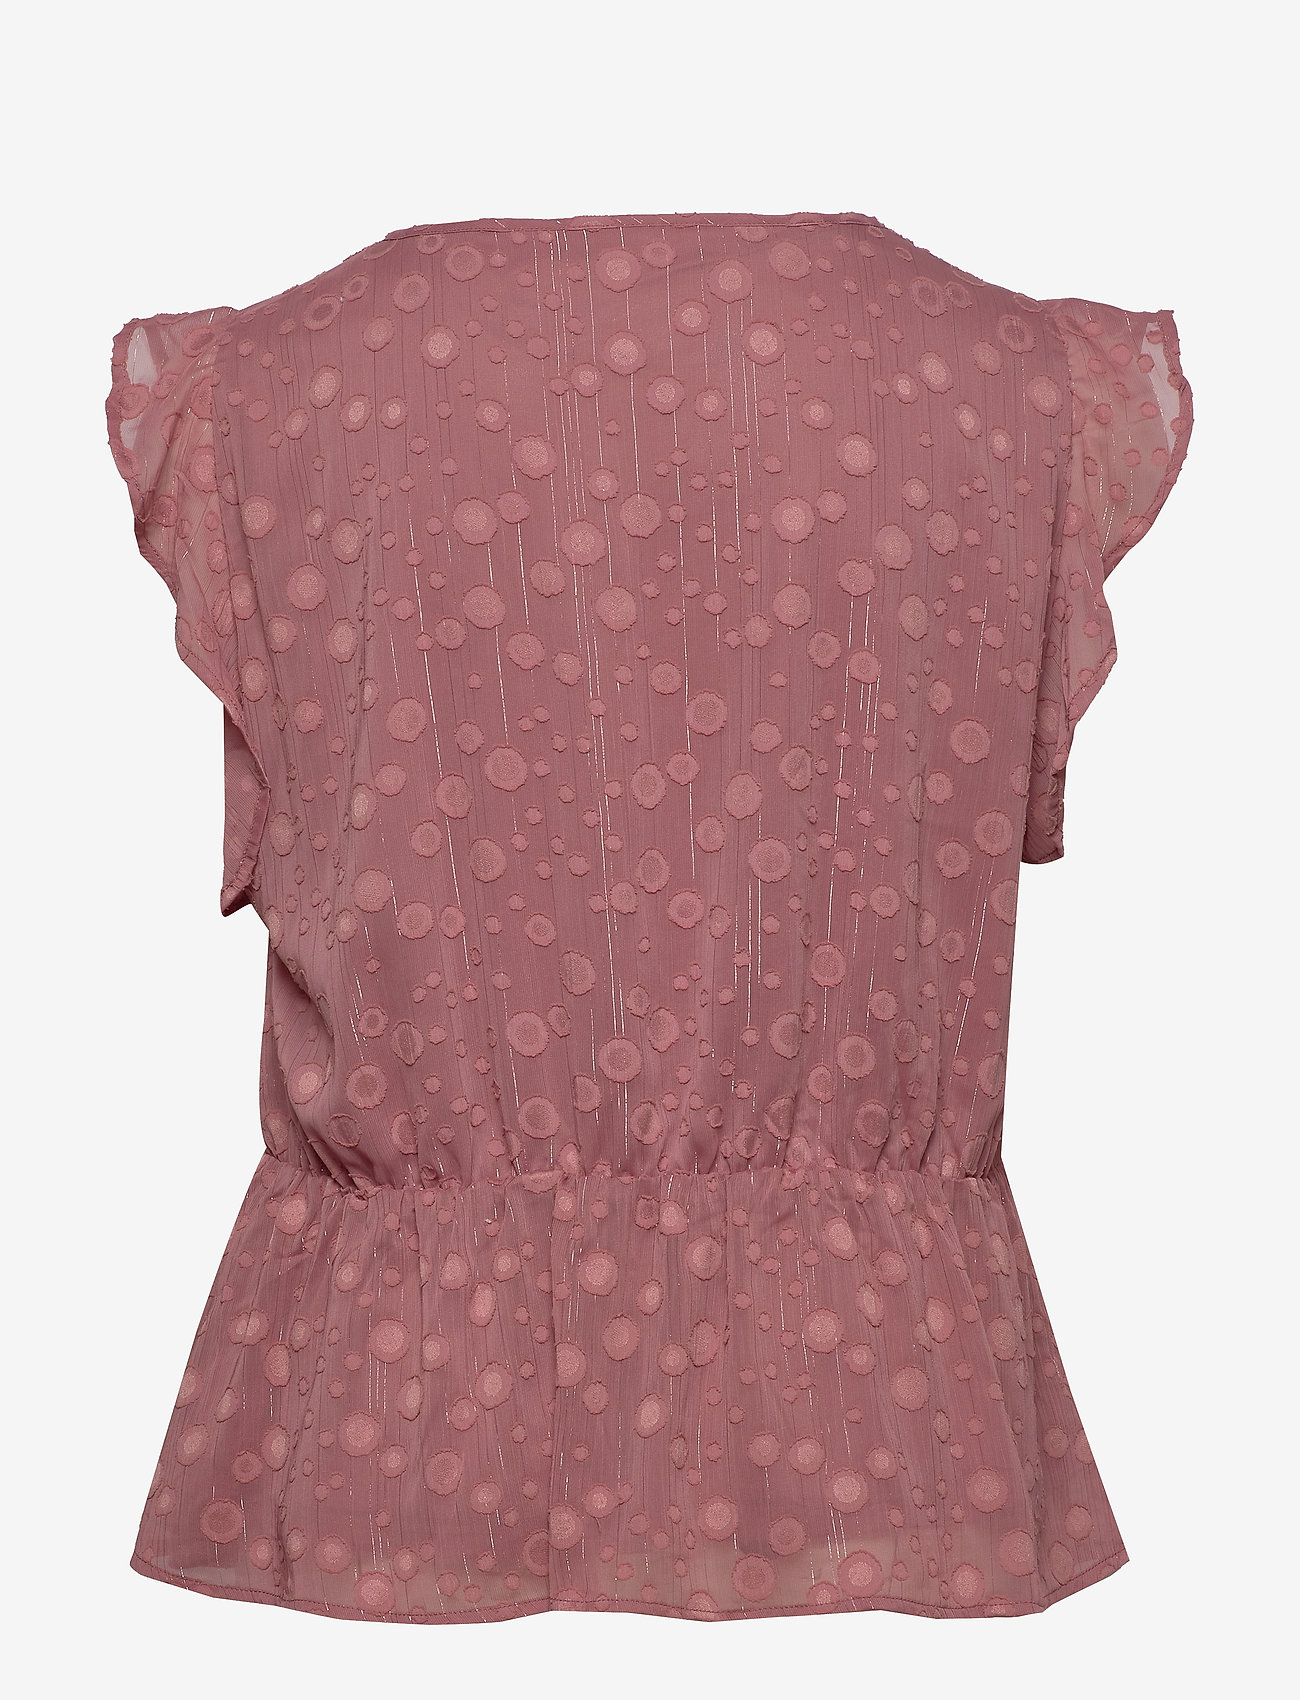 ONLY Carmakoma - CARSENA SL TOP - sleeveless blouses - withered rose